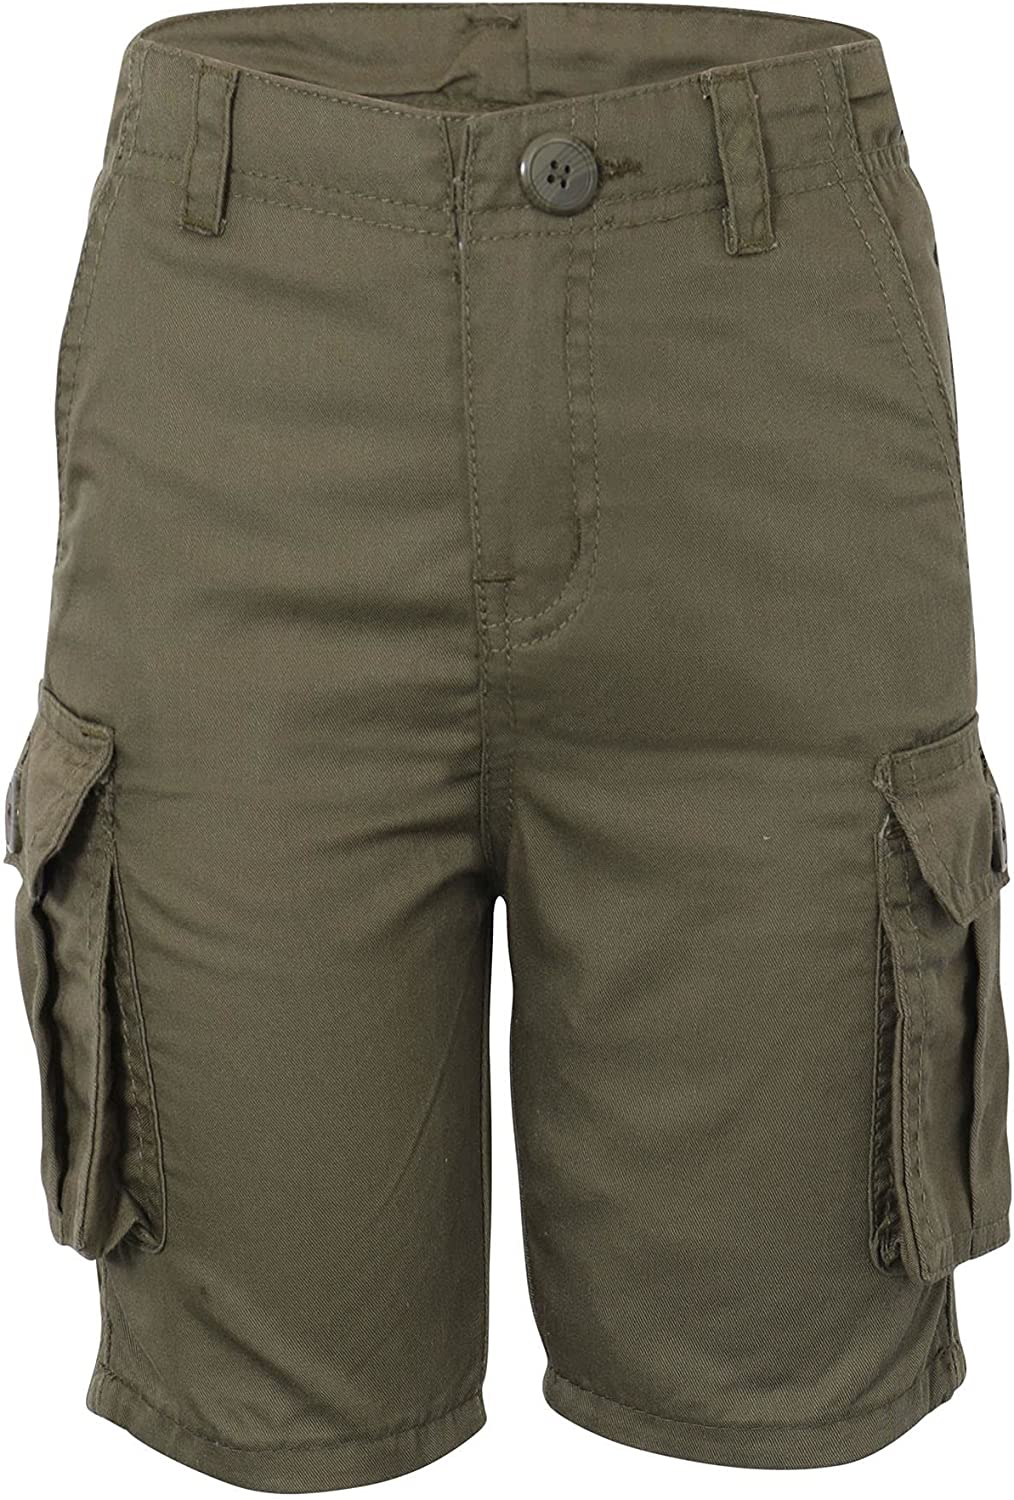 A2Z 4 Kids Cargo Shorts Max 71% Award OFF Casual Trendy Pocket Multi Olive Combat